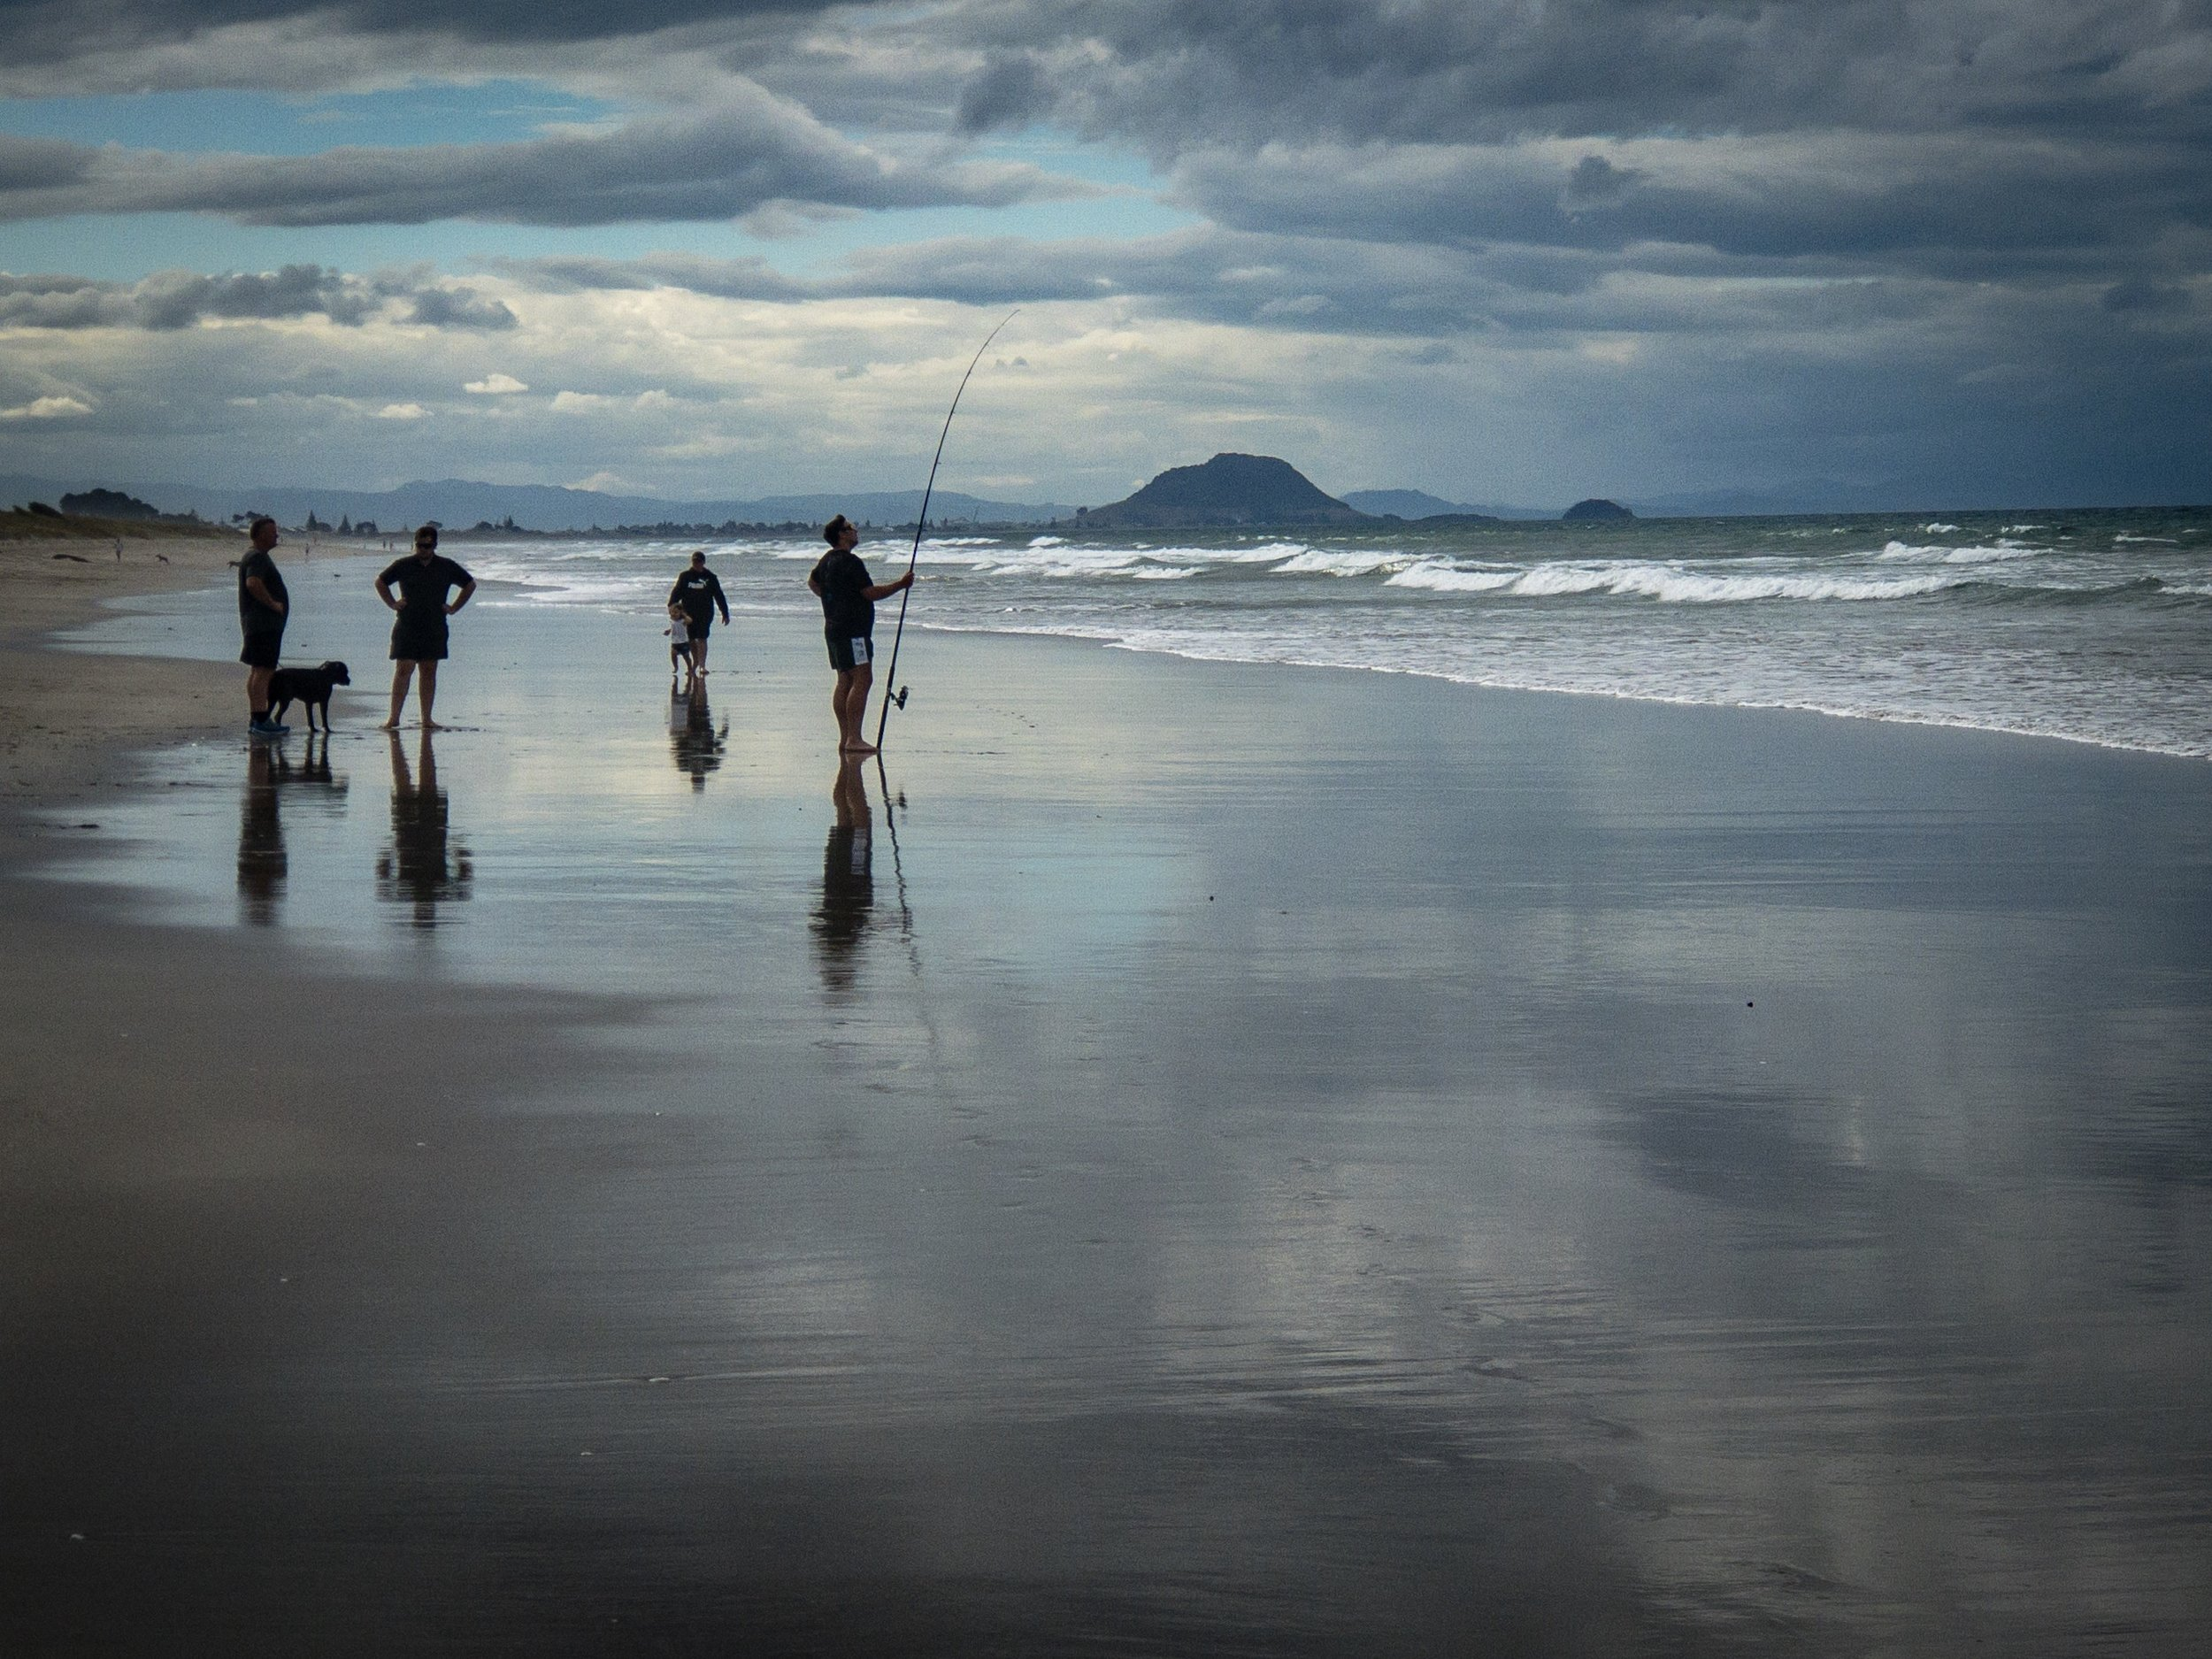 The long stretch of beach at Papamoa is a favorite surf fishing spot